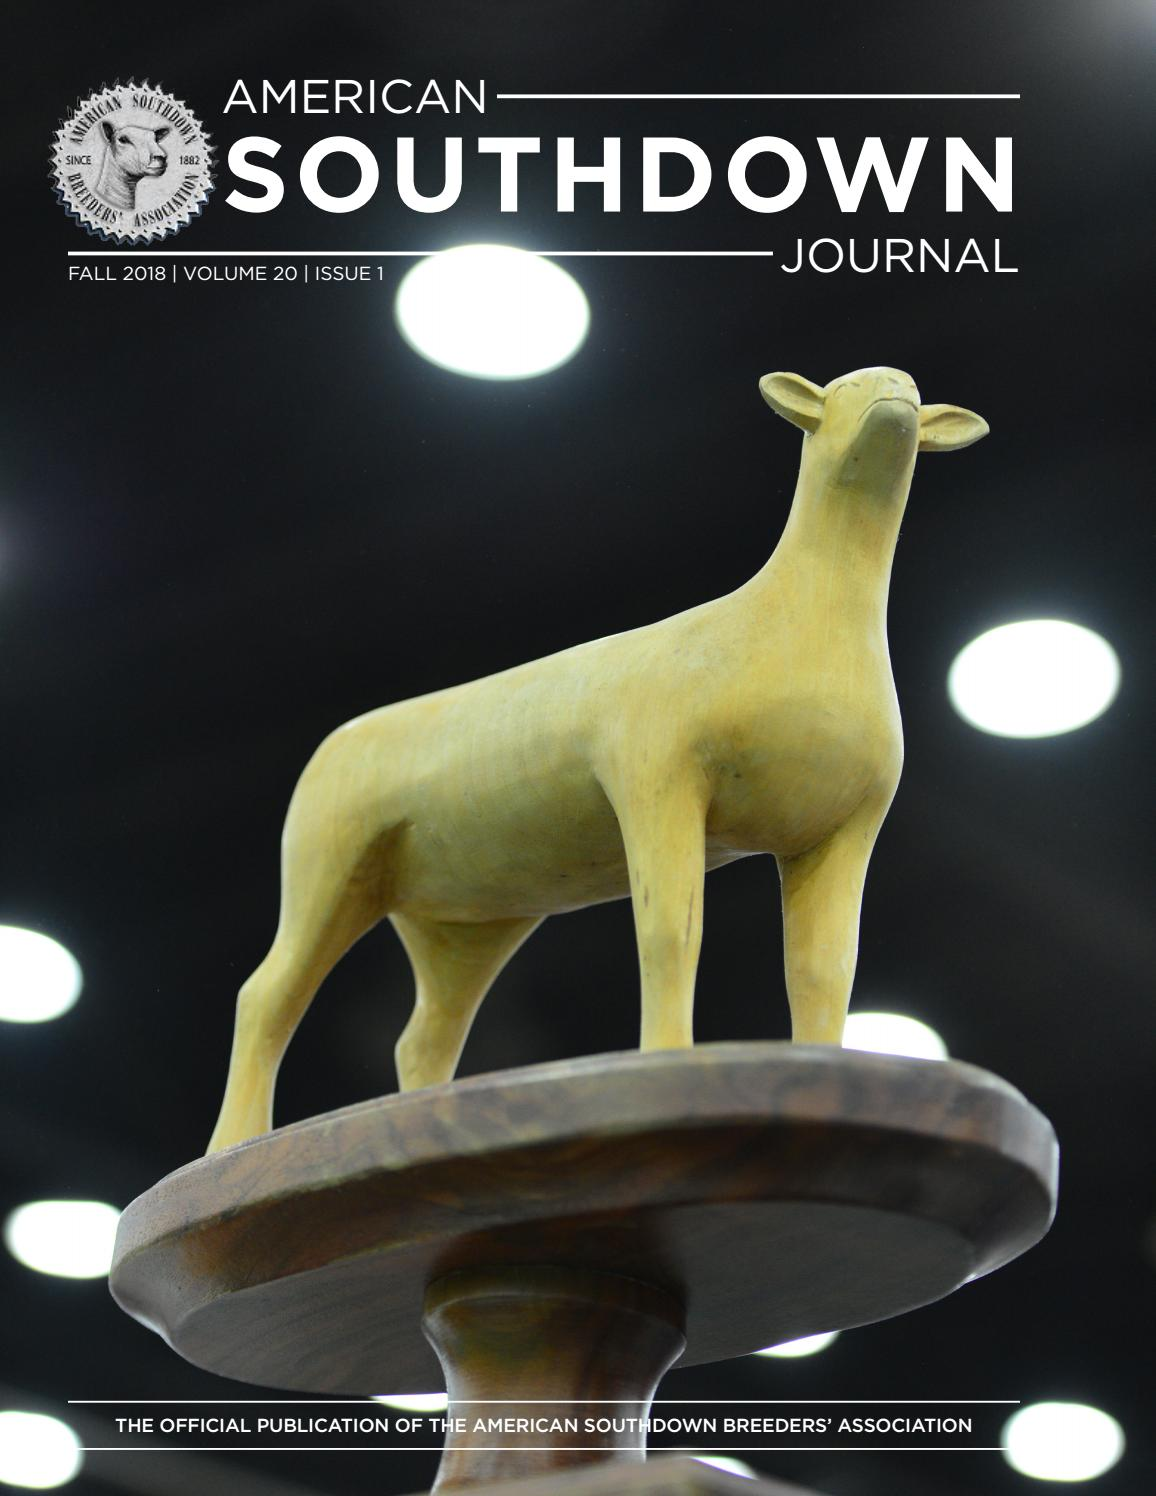 2018 American Southdown Journal by The American Southdown